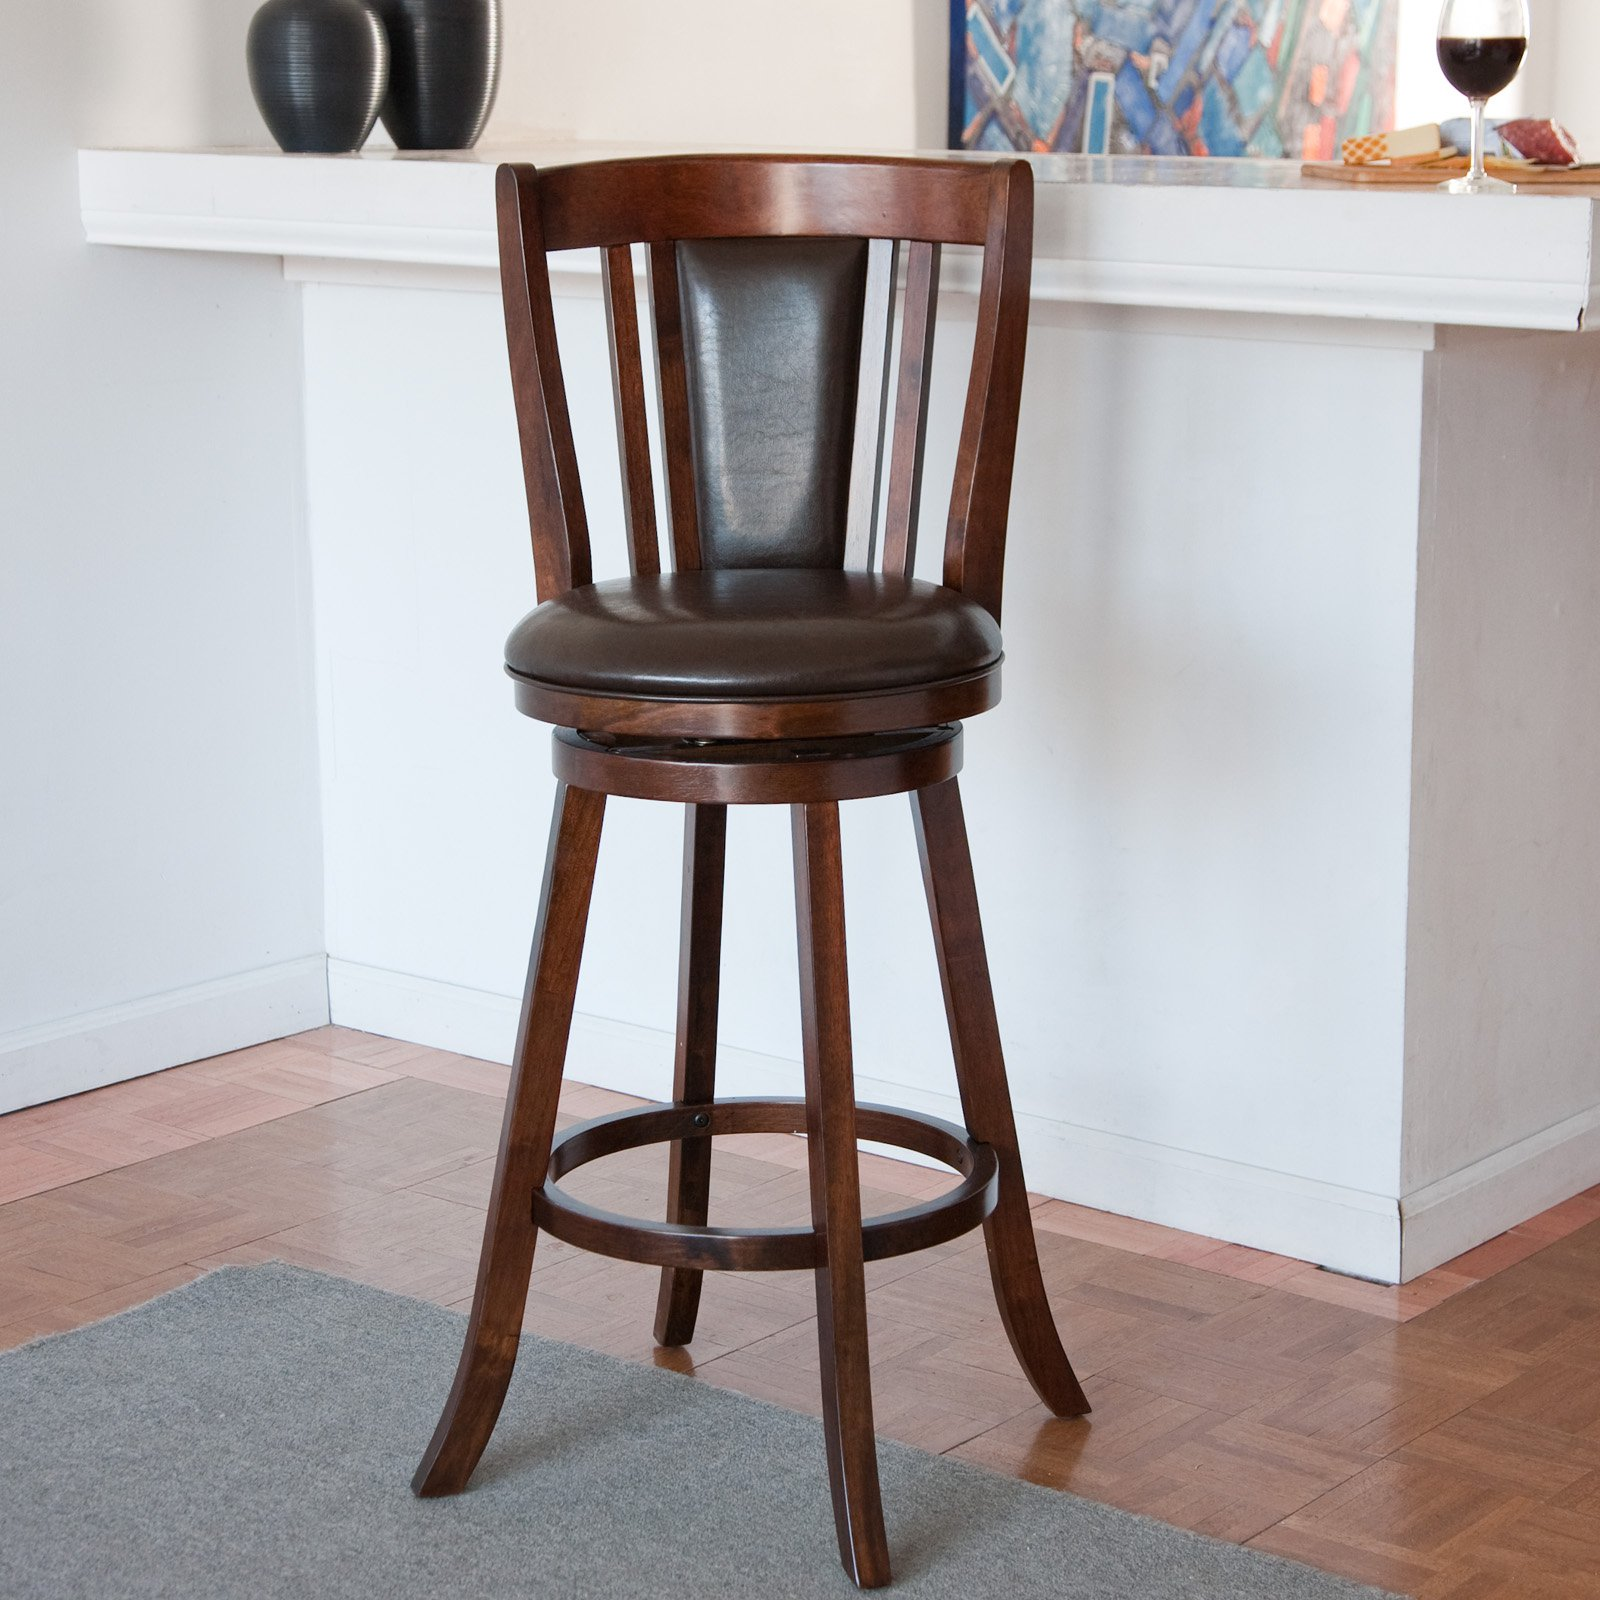 Doncaster 24 in. Swivel Counter Stool